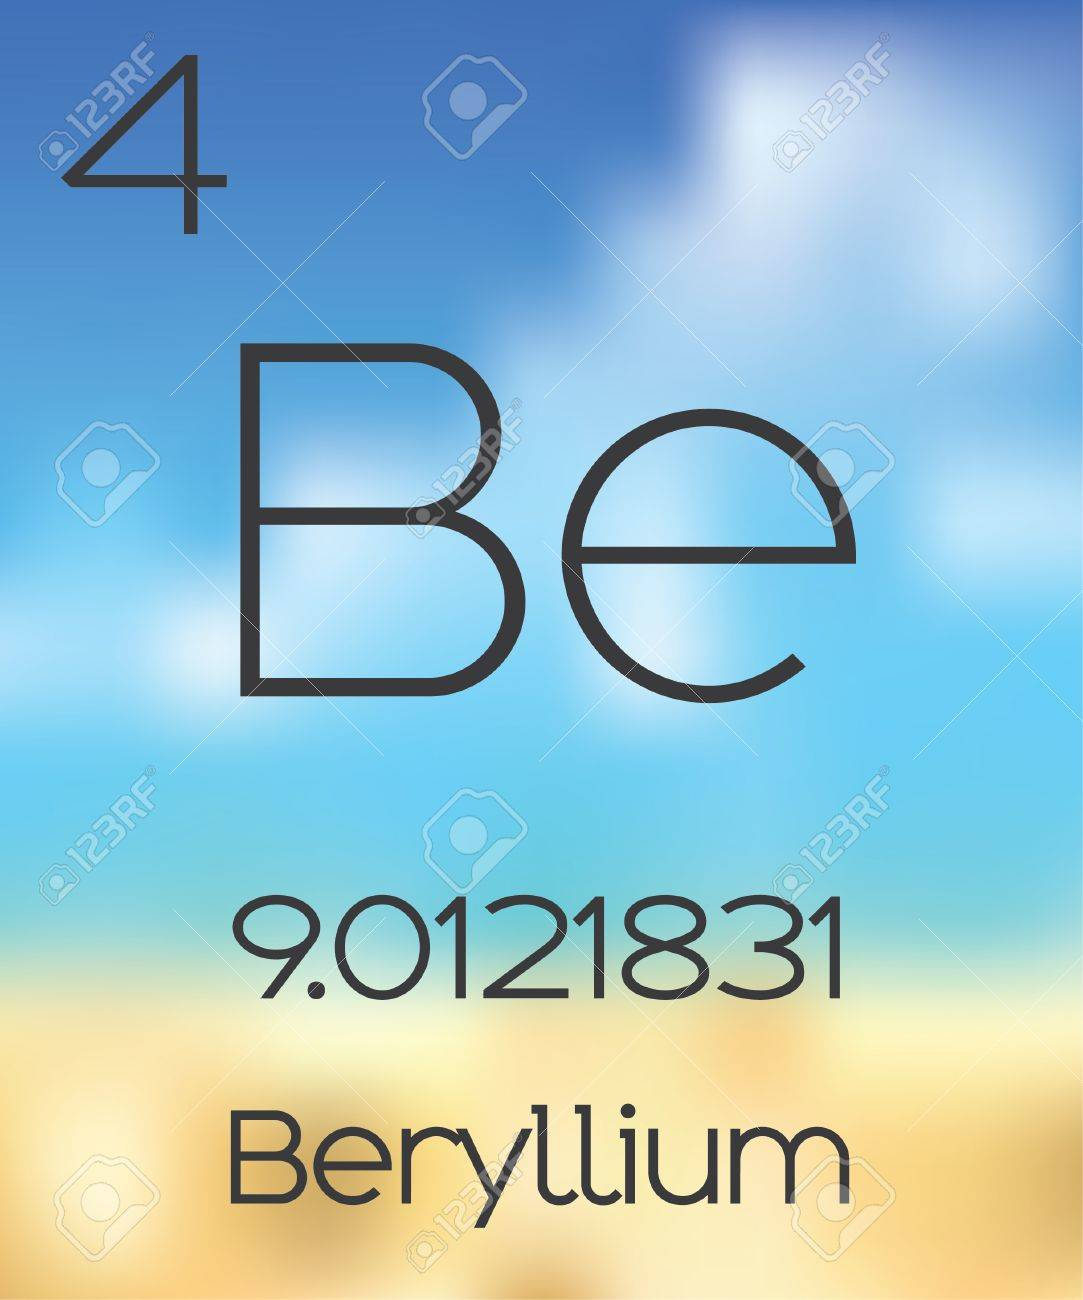 Beryllium periodic table choice image periodic table images periodic table of elements beryllium image collections periodic periodic table of elements beryllium gallery periodic table gamestrikefo Image collections